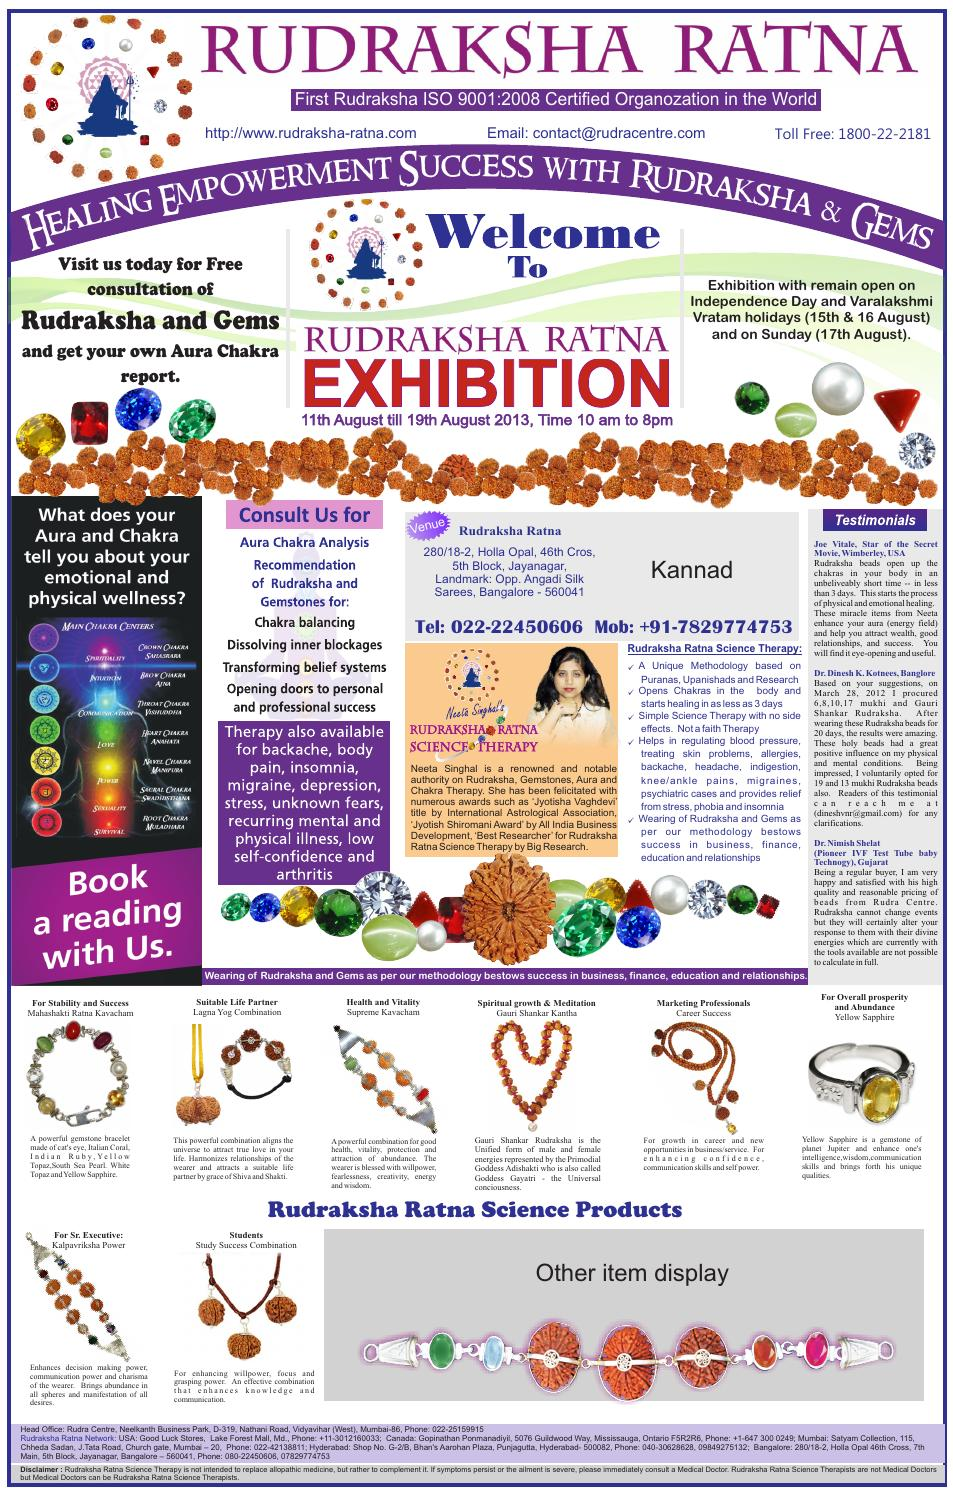 Rudraksha Ratna Exhibition in Bangalore August 2013 by